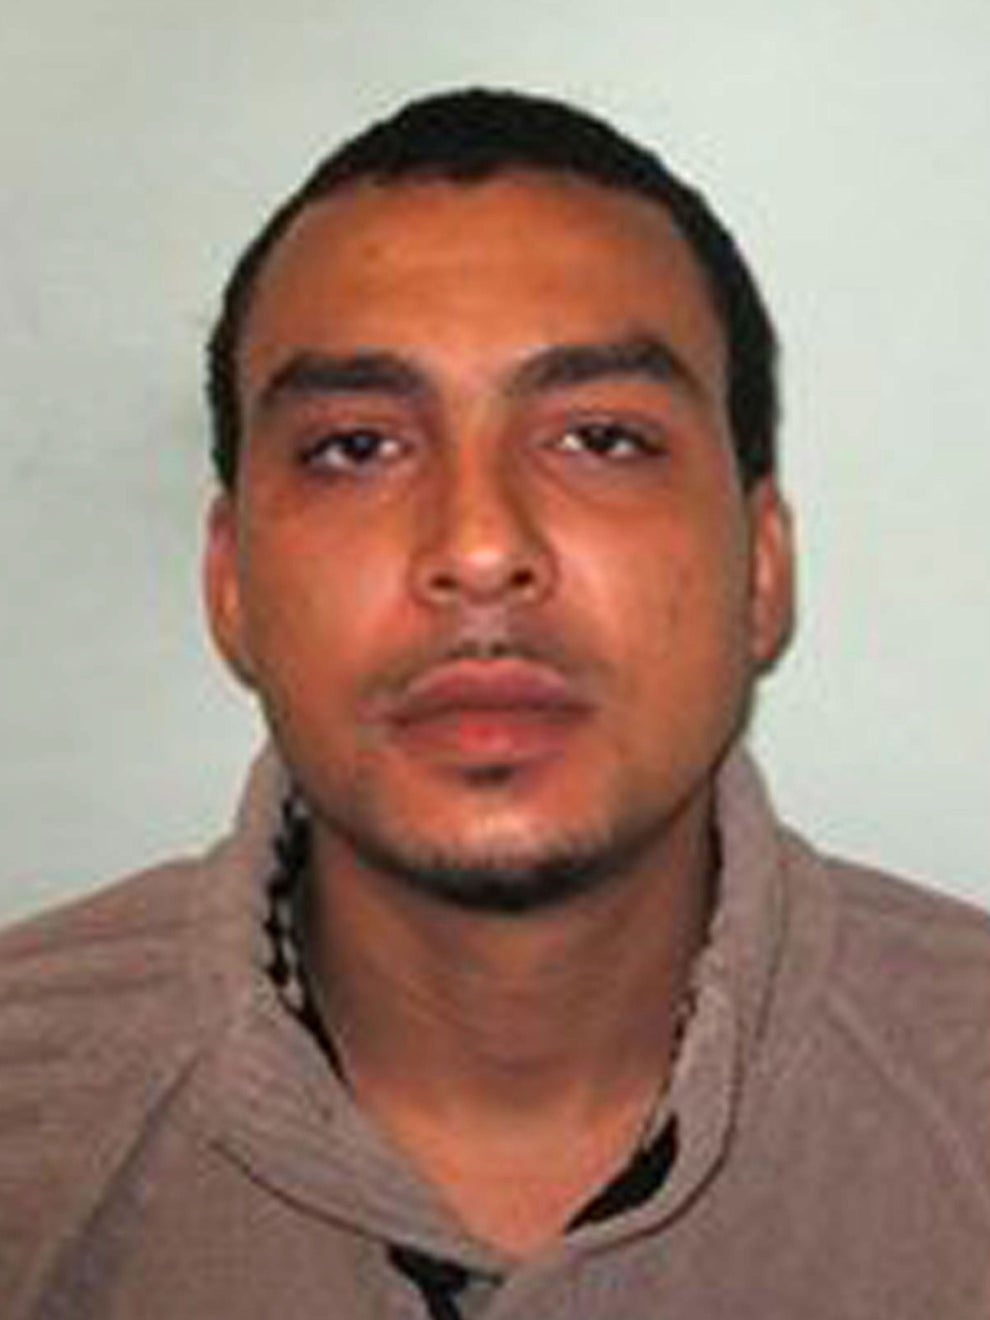 London woman held in murder probe after body found in boot